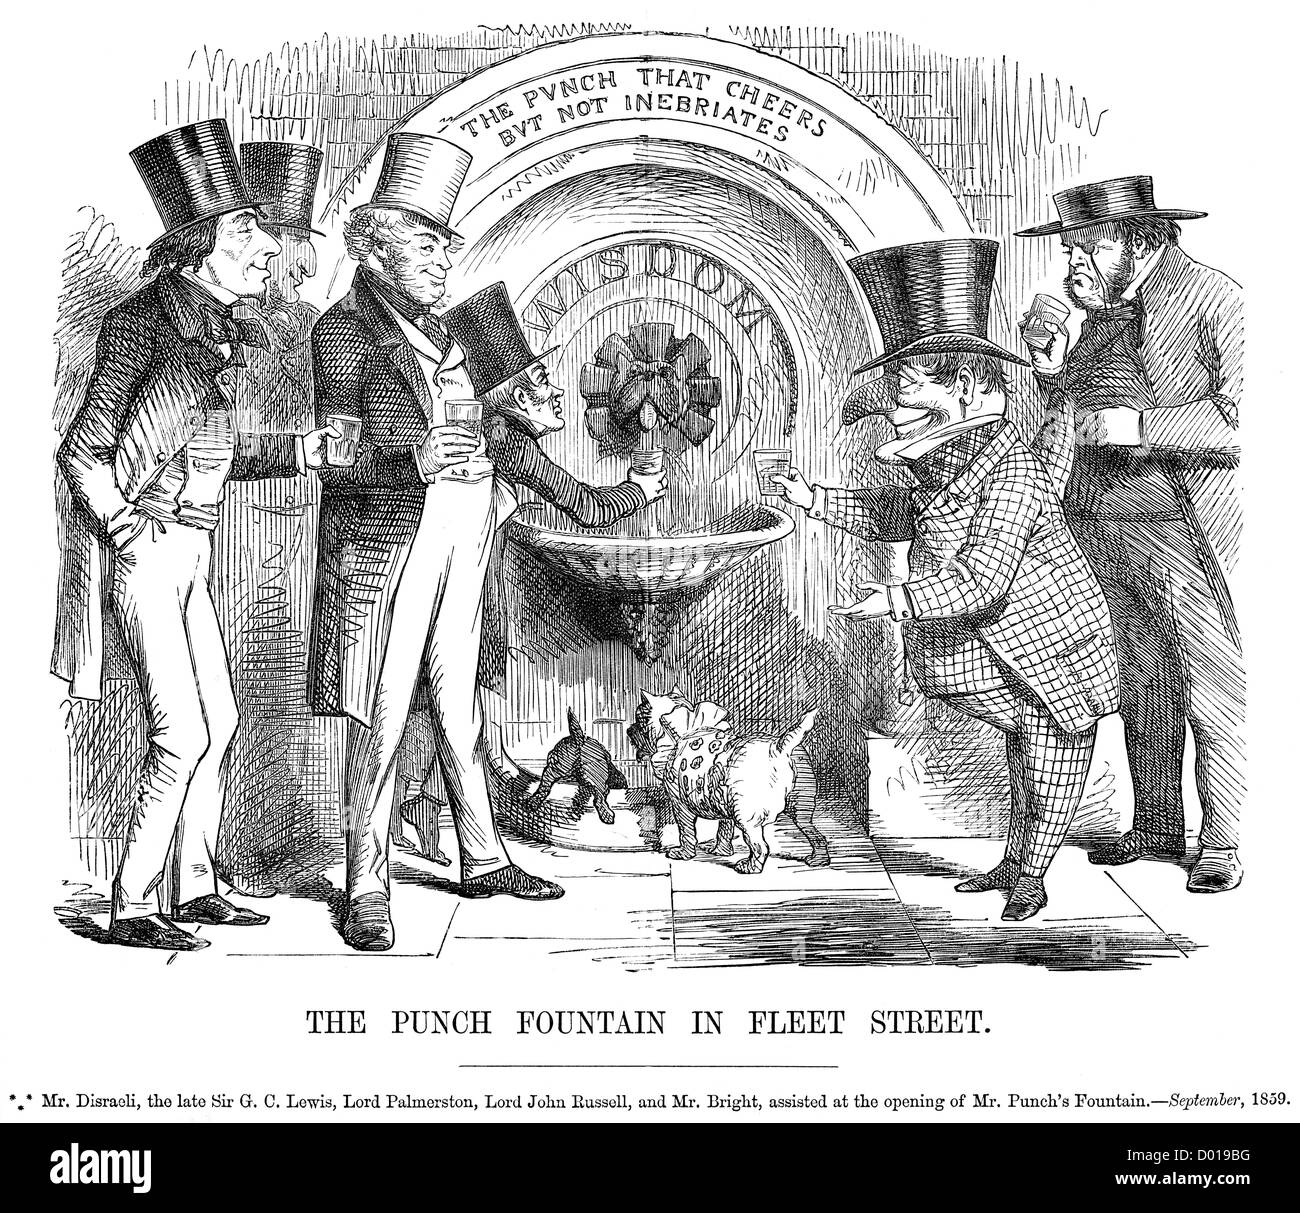 Disraeli, Lord Palmerston, and John Russell at Mr Punch's Fountain, September 1859 - Stock Image